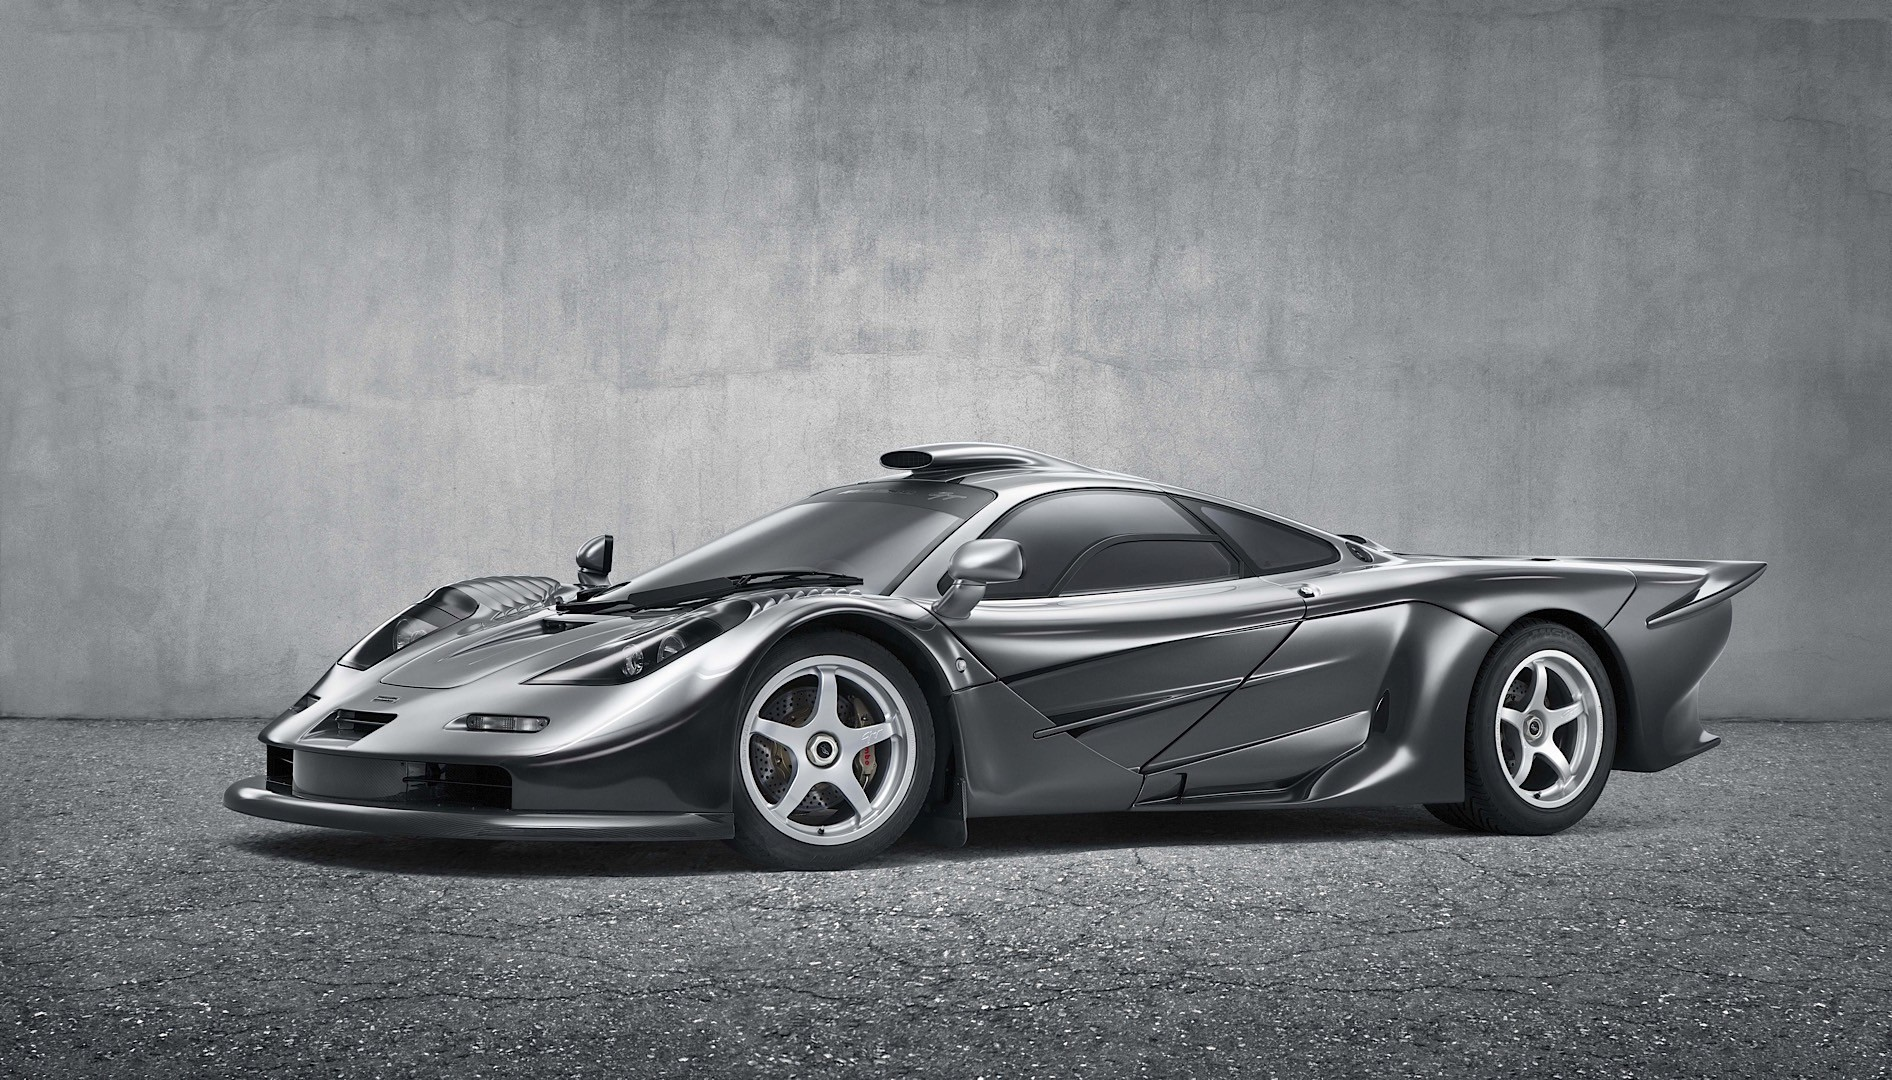 Mclaren Brings Alain Prost Inspired P1 And F1 Gt To